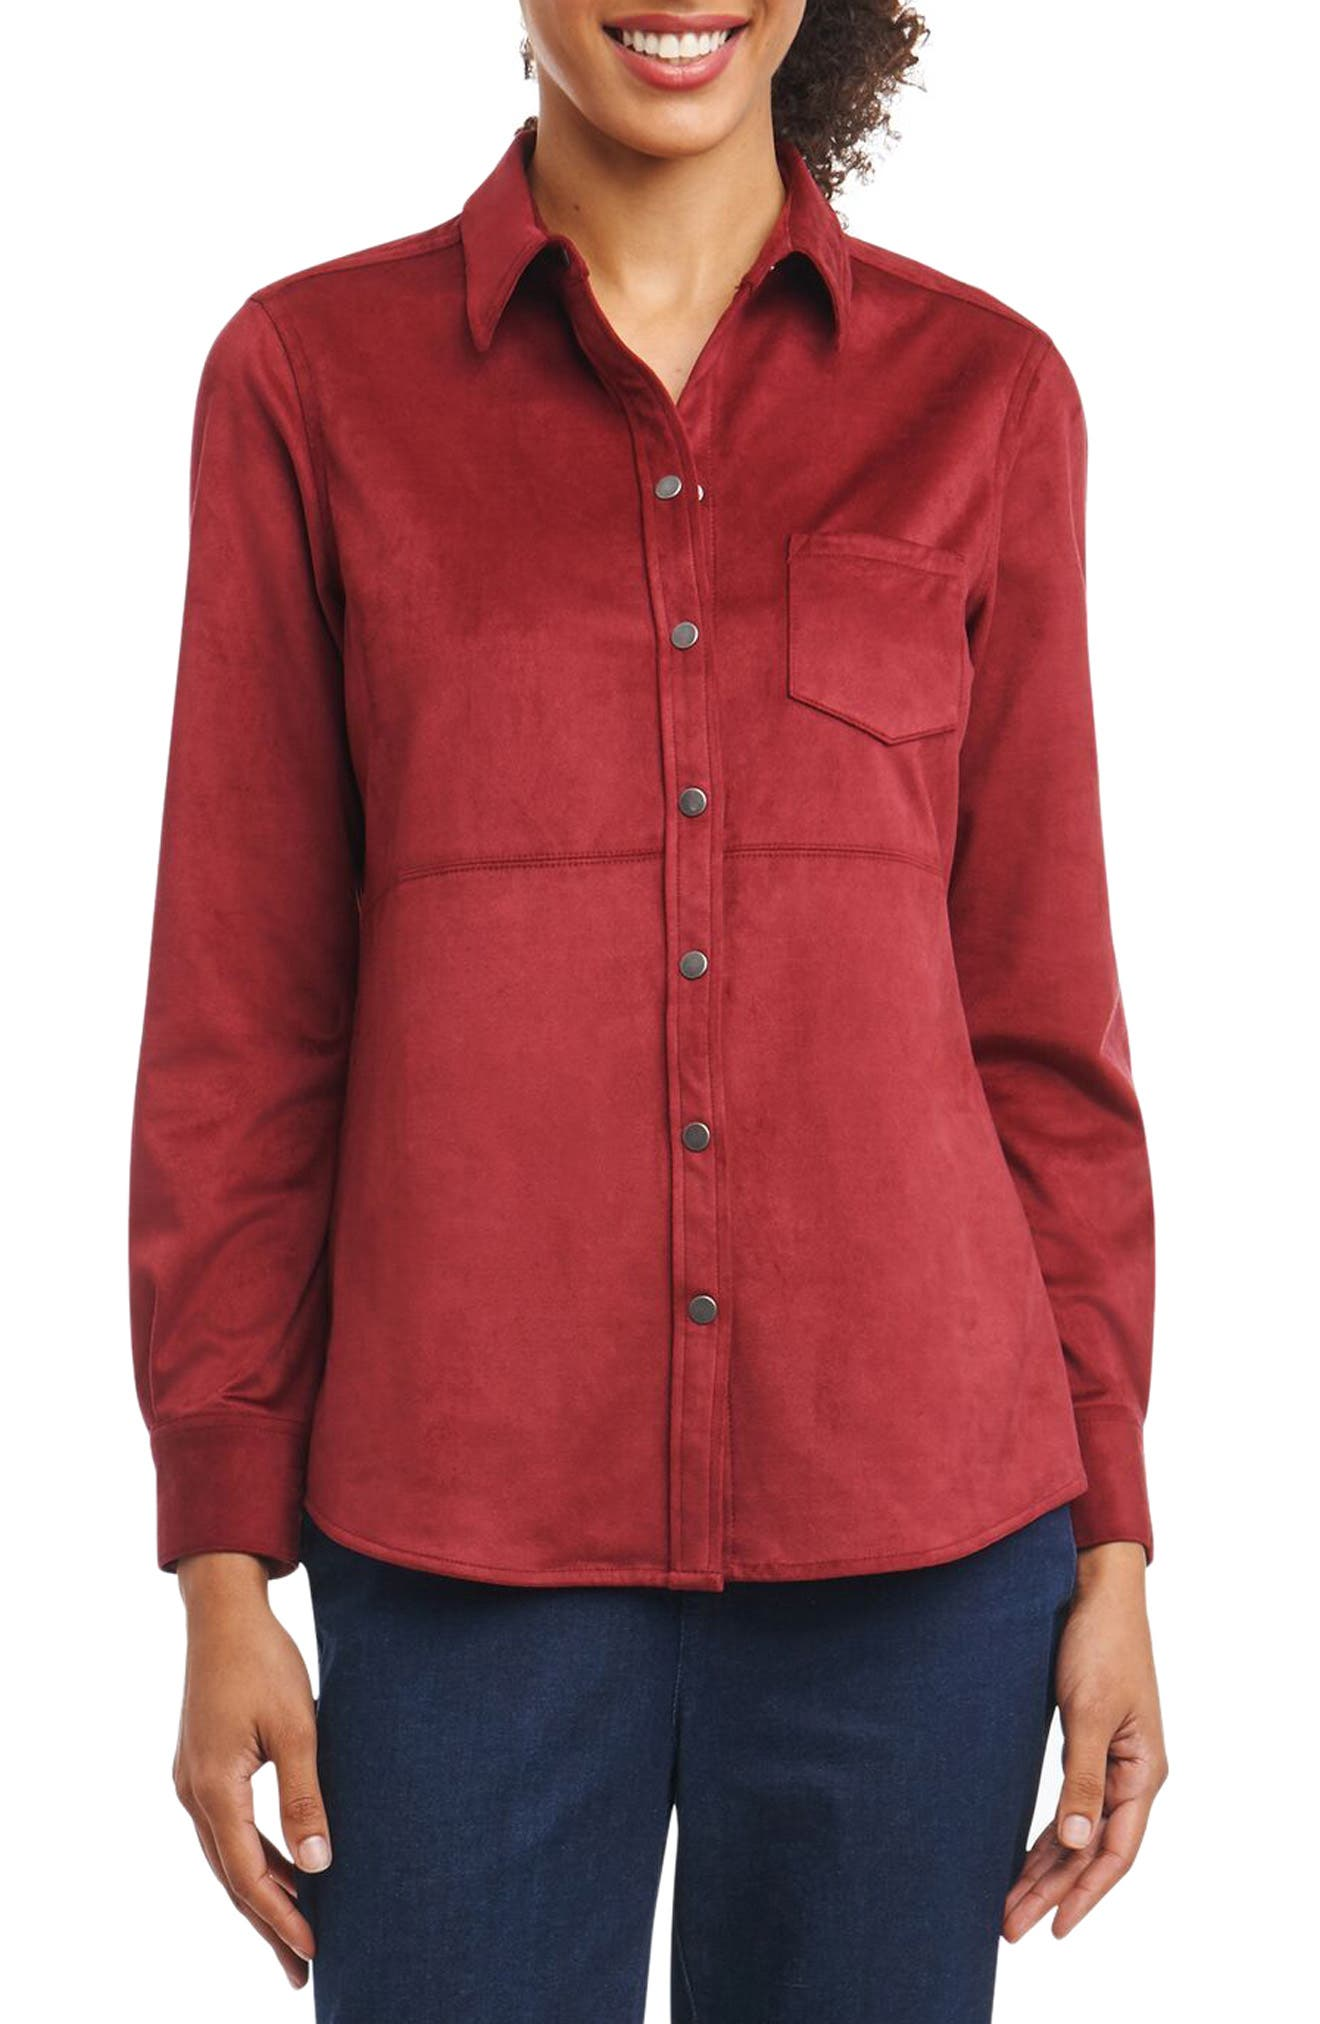 Jena Faux Suede Shirt,                         Main,                         color, Roseberry